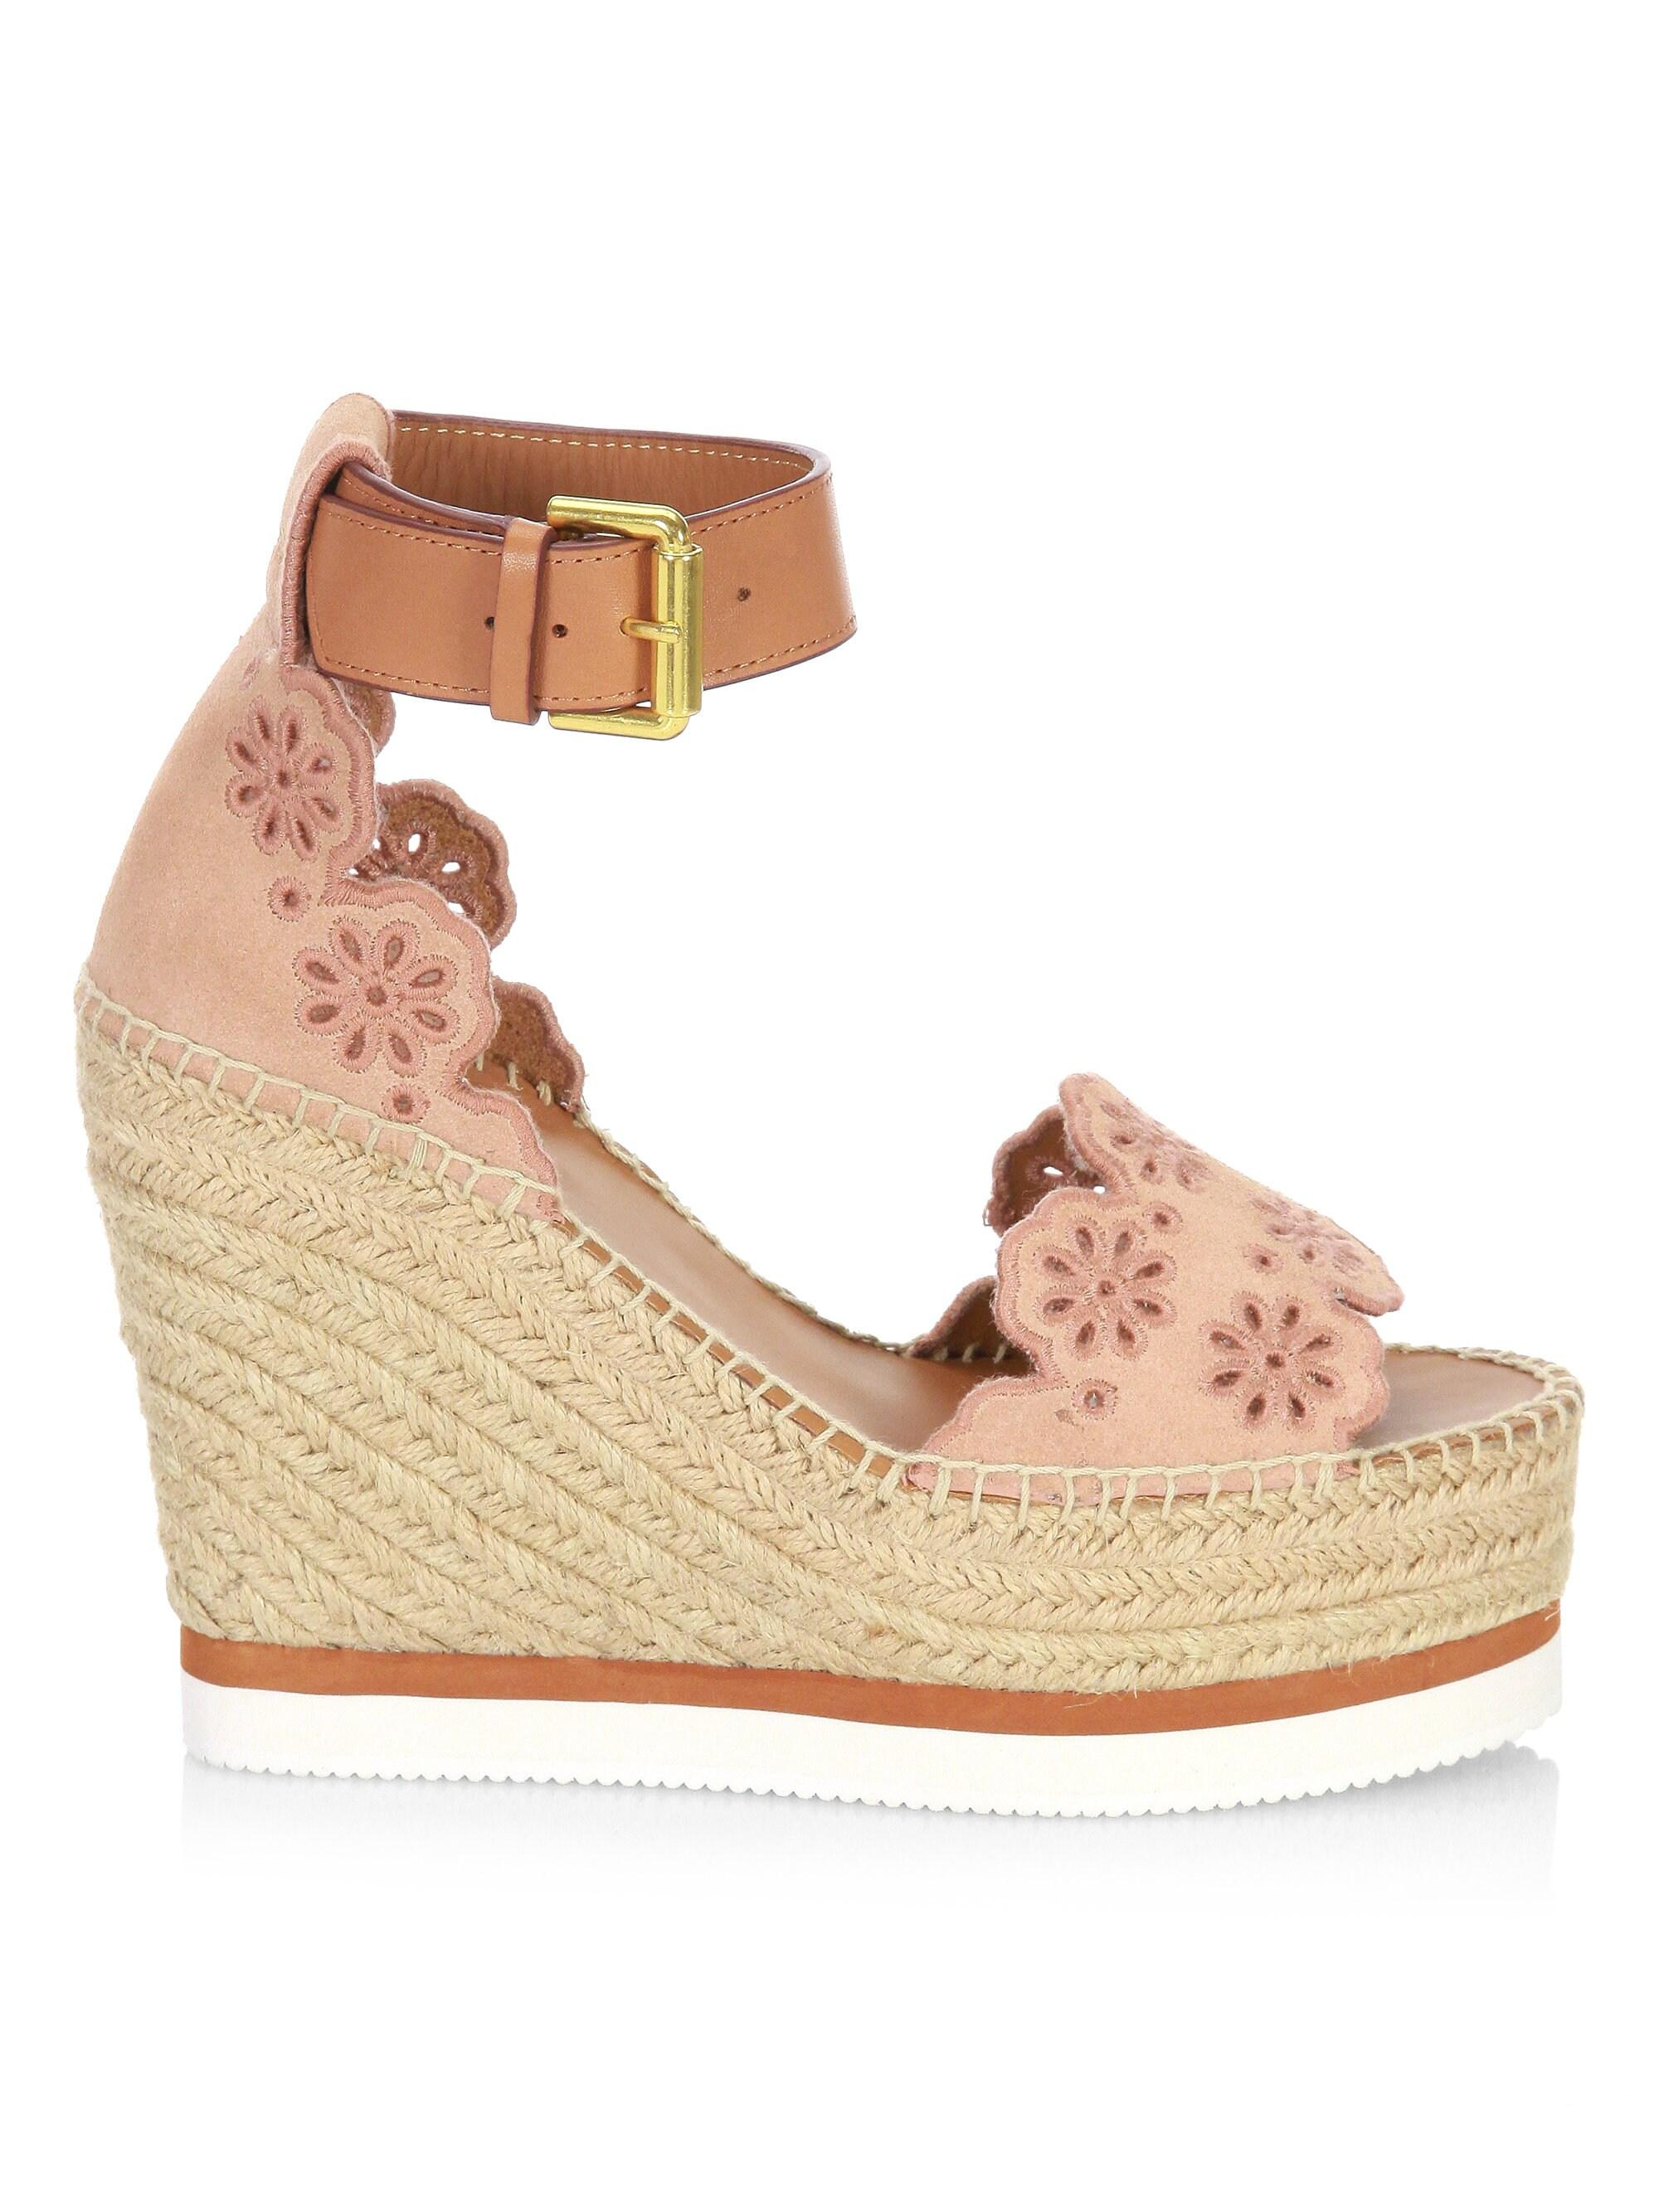 d65c5d6cd See By Chloé Laser Cut Suede Wedge Espadrilles in Natural - Lyst